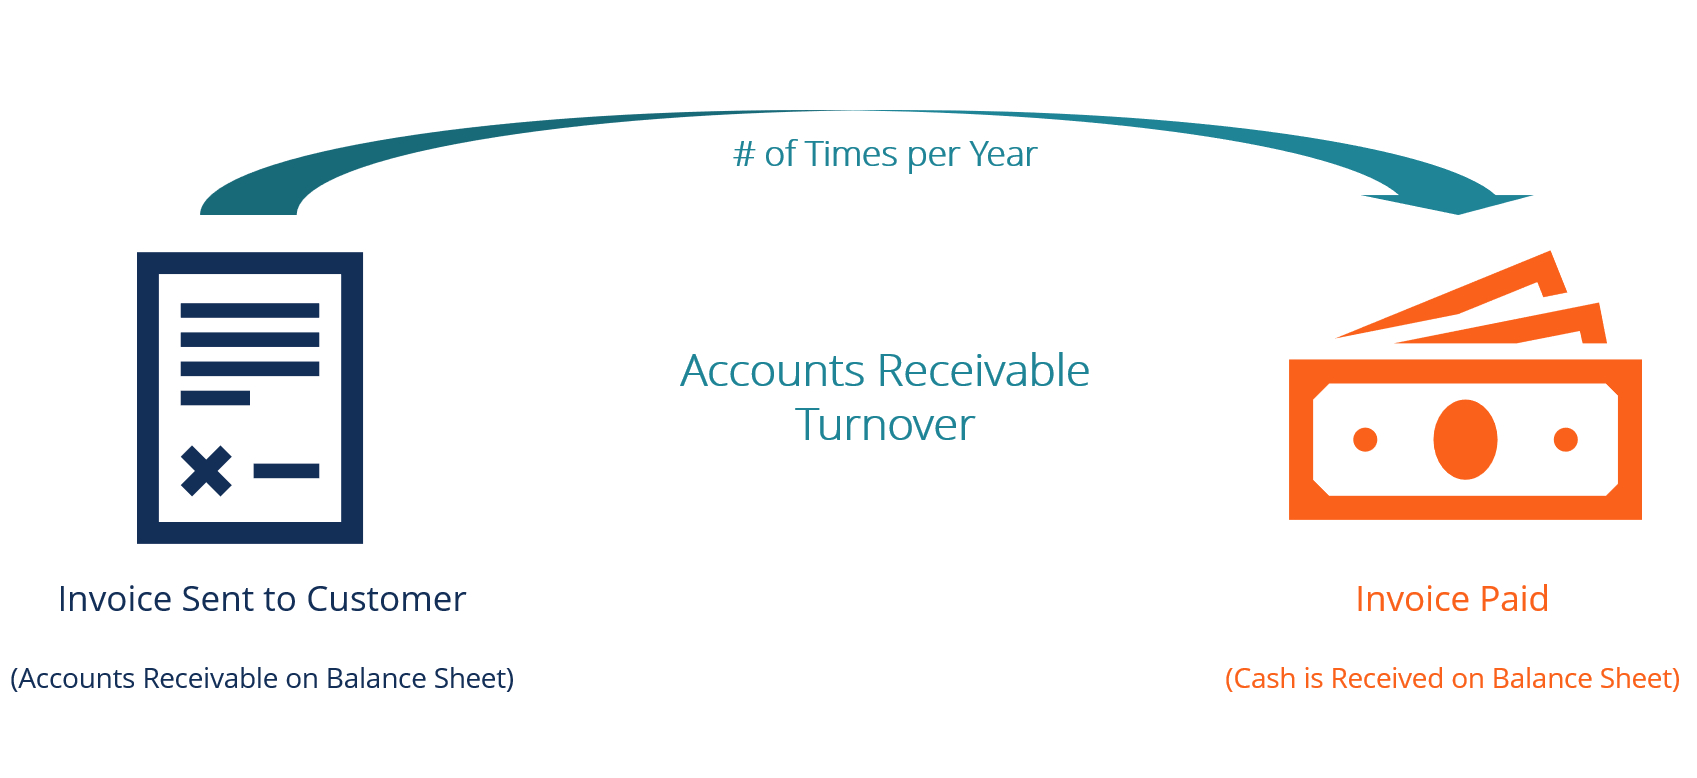 Account Receivables & Collection Analysis Excel Spreadsheet Regarding Accounts Receivable Turnover Ratio  Formula, Examples